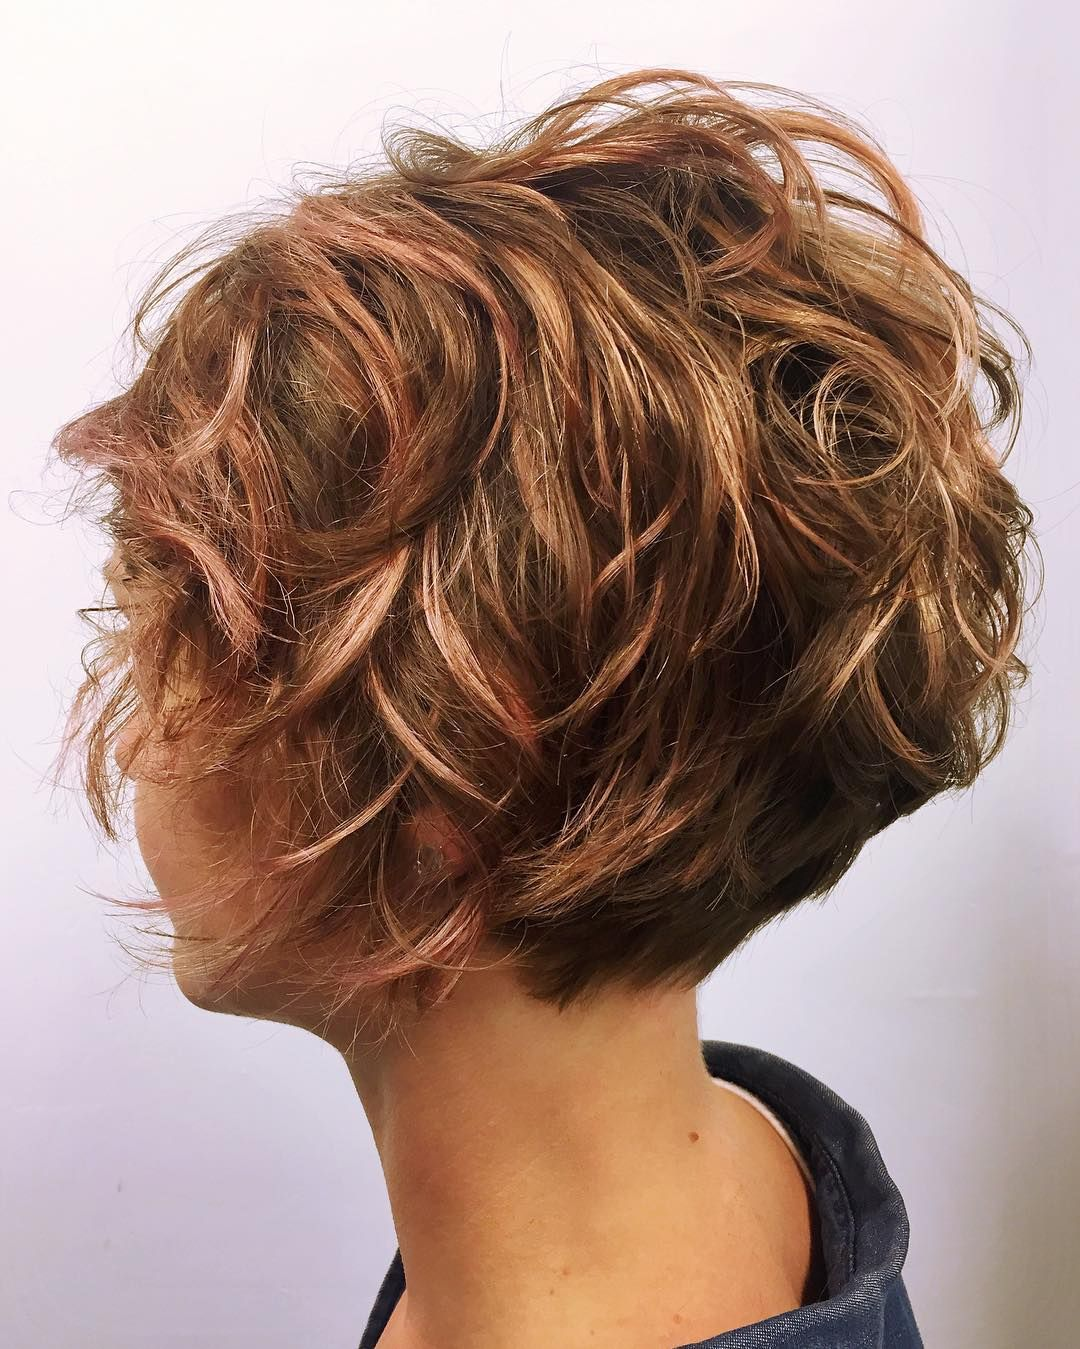 Short messy curls hair style pinterest messy curls short